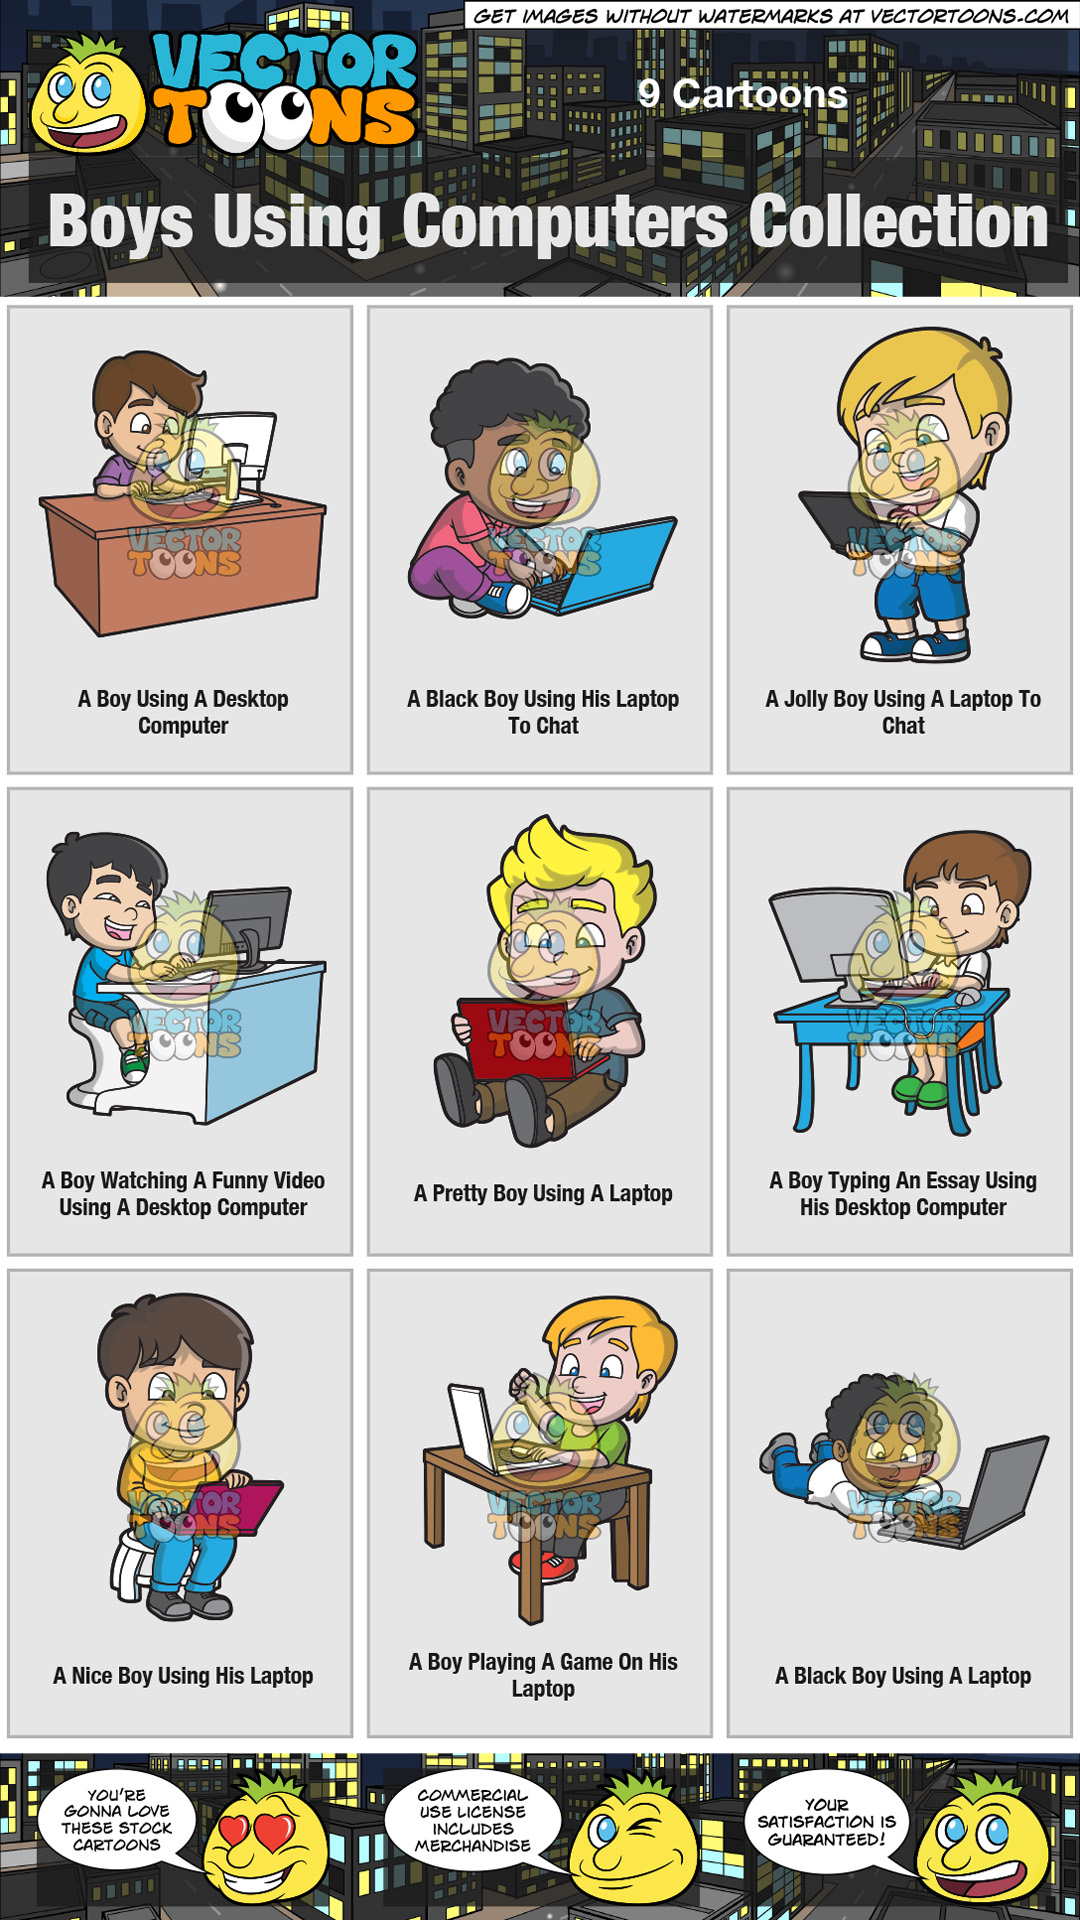 Boys Using Computers Collection thumbnail